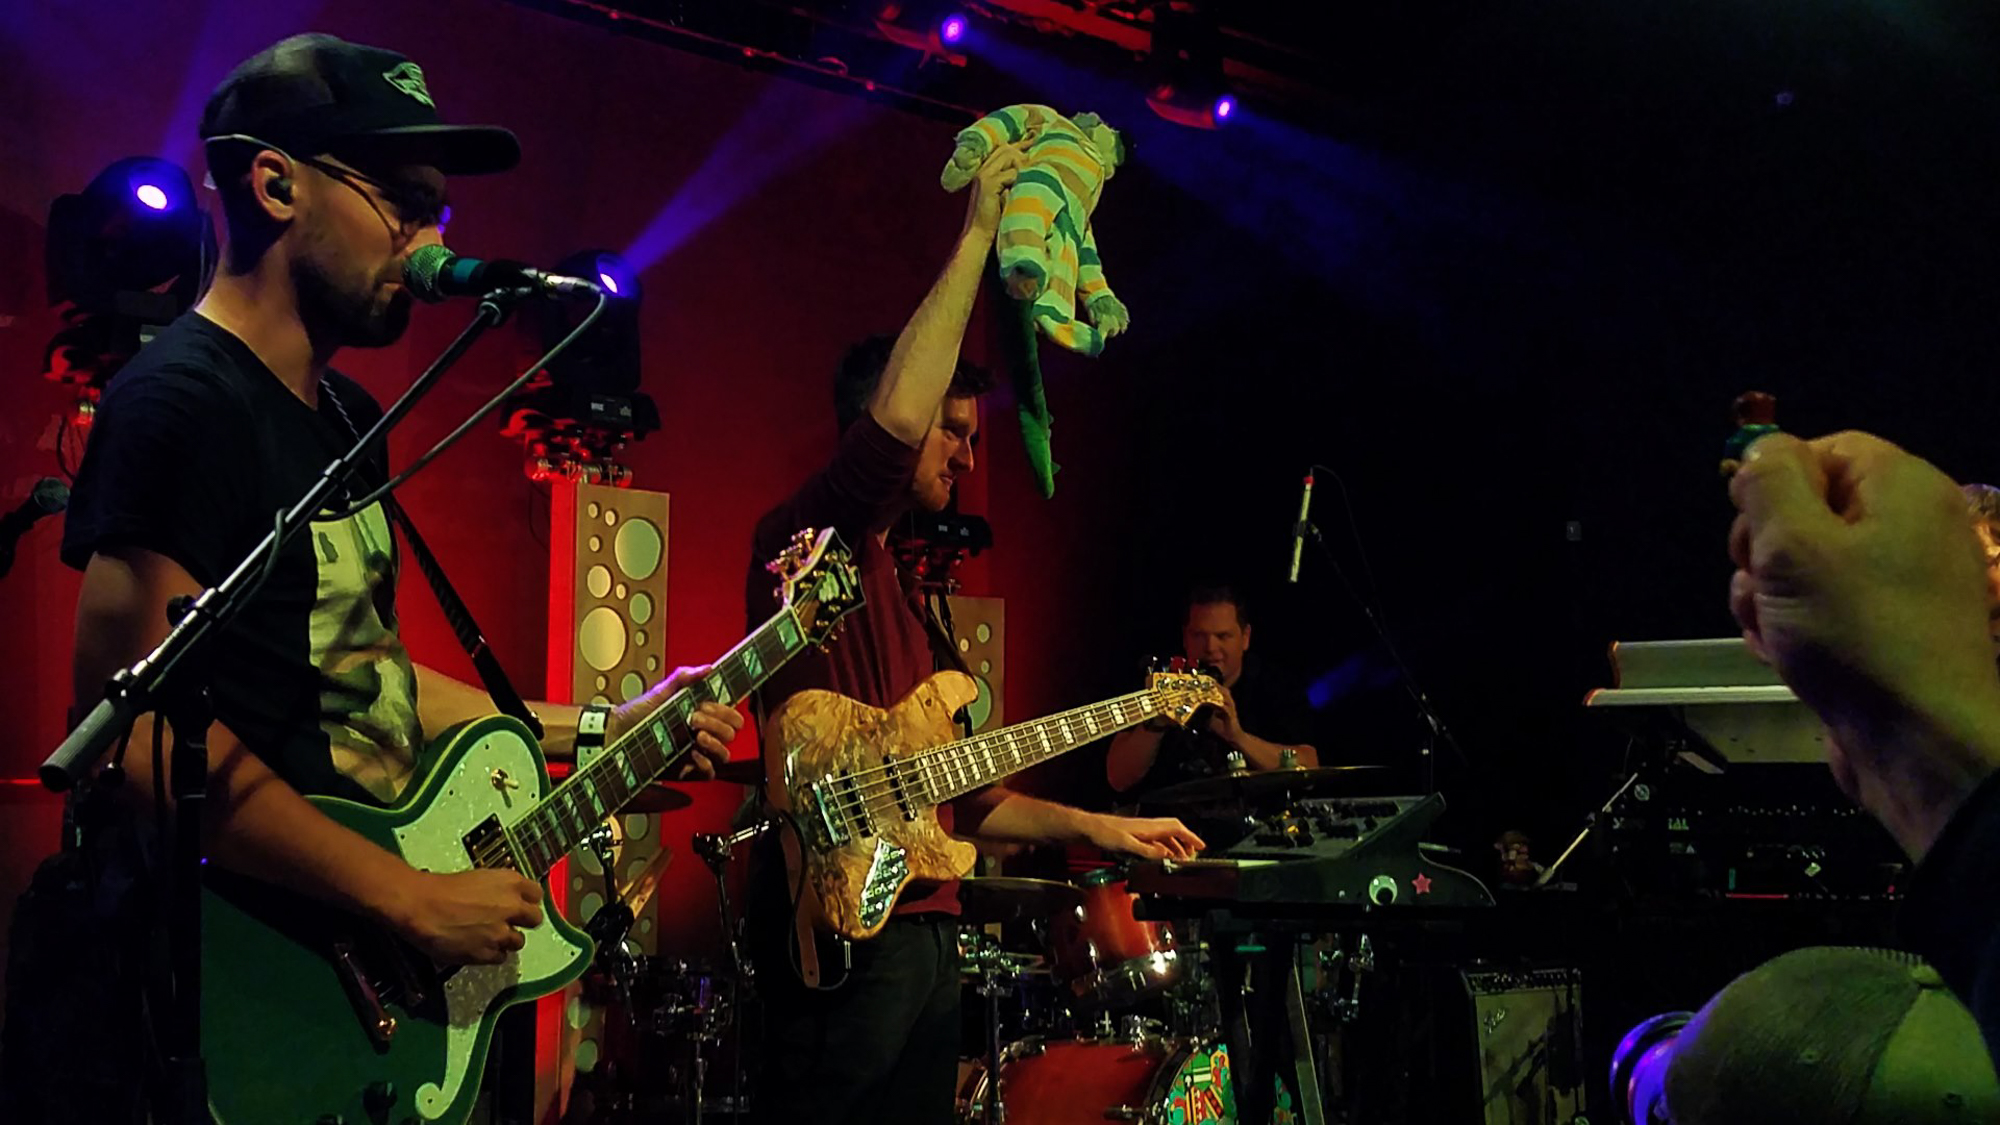 Aqueous Impress in Saratoga Springs, Covers The Raconteurs, Tame Impala